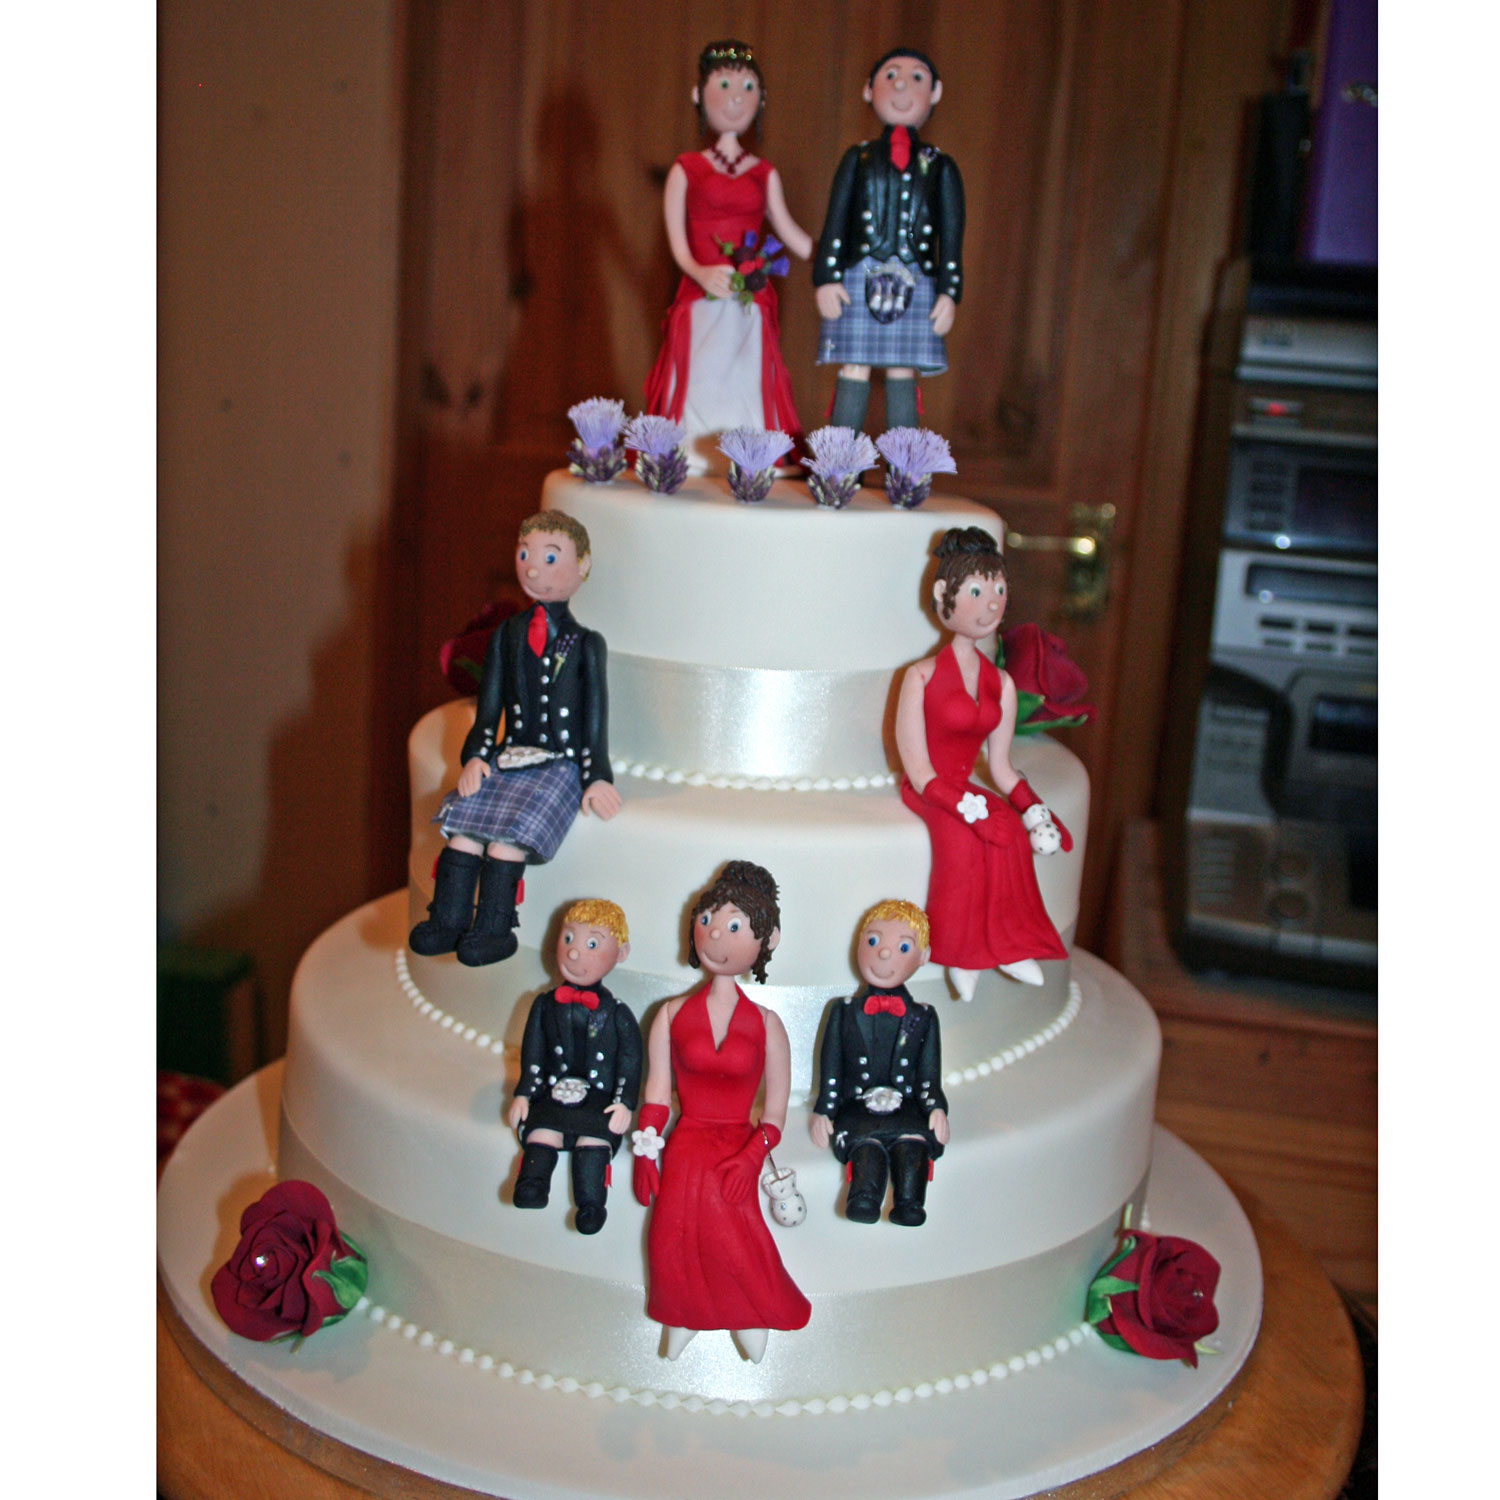 Three Tier Cake with Hand-crafted Wedding Party